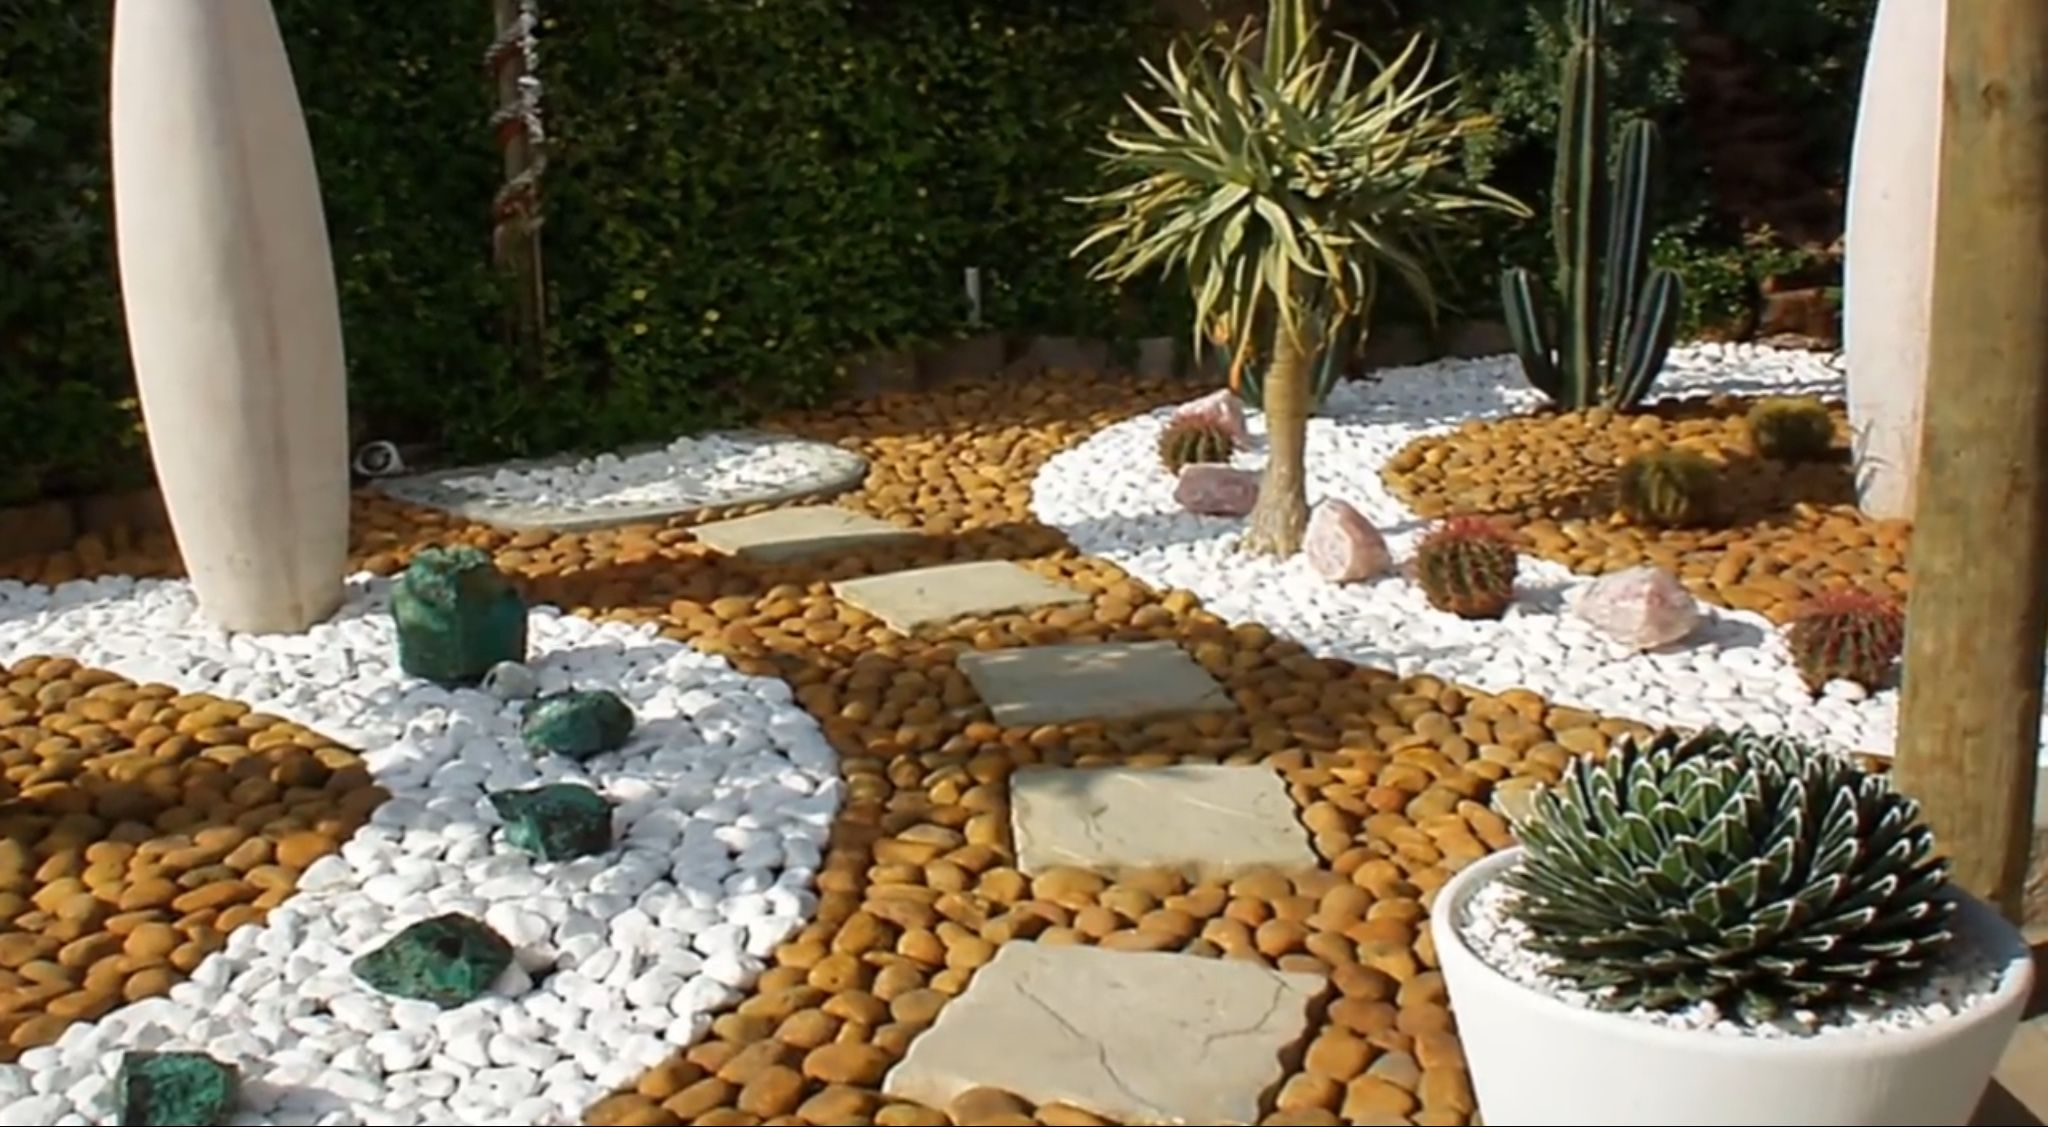 Pin By Nancy On Plantas Tolerantes A La Sequia Rock Garden Design Pebble Garden Garden Design